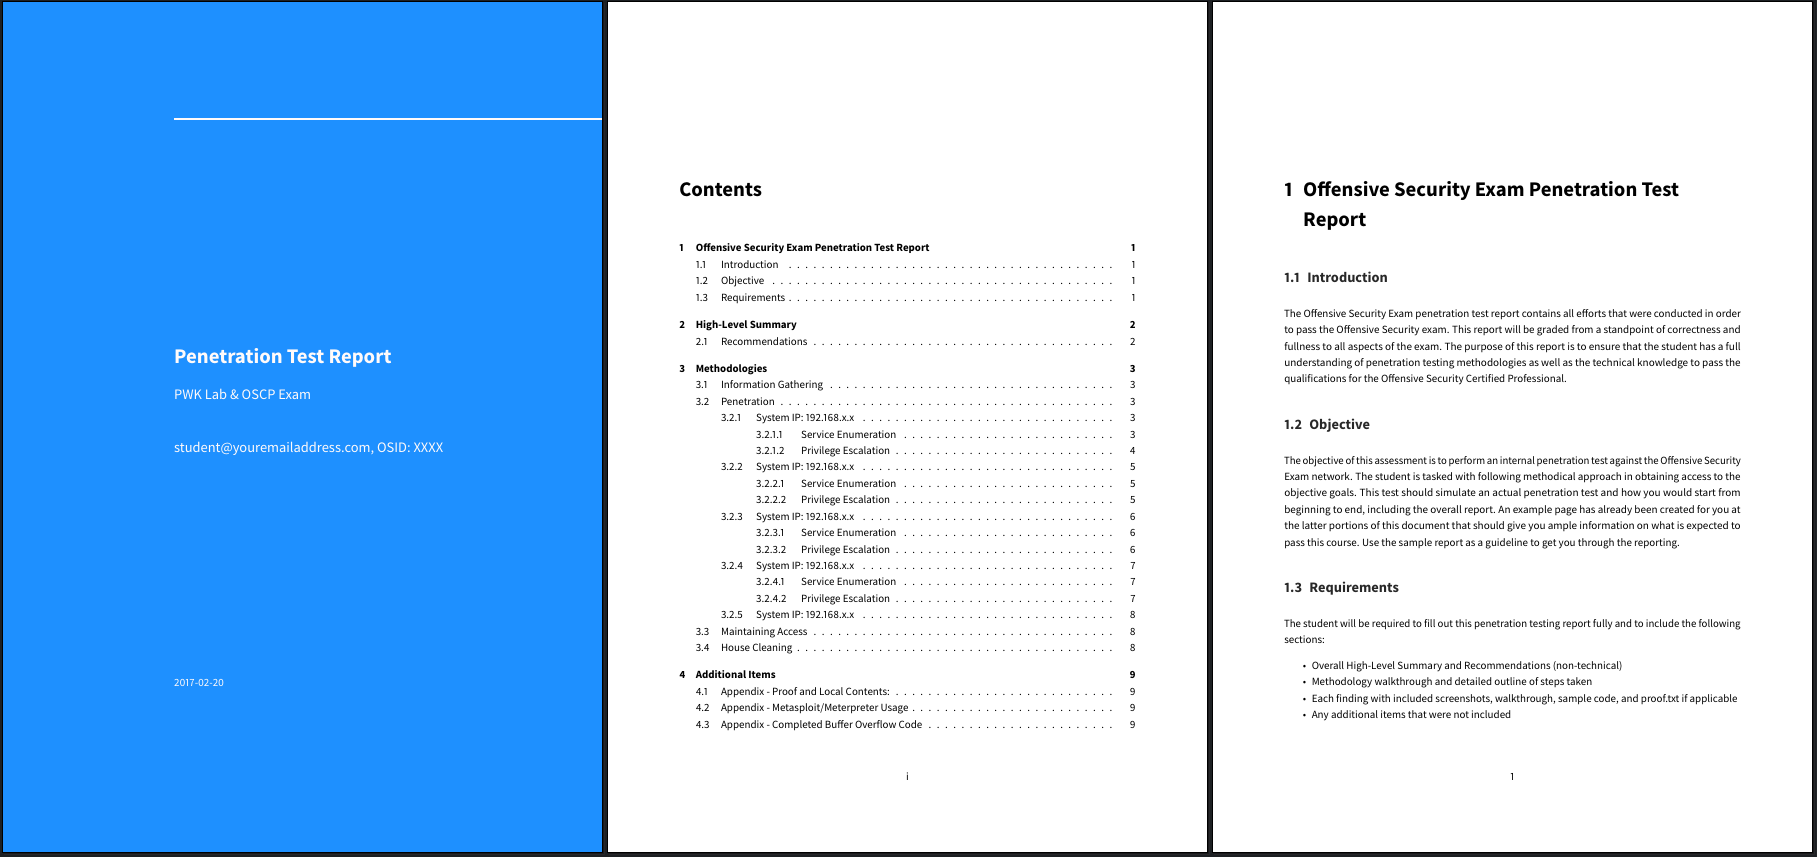 OSCP Exam Report Template in Markdown